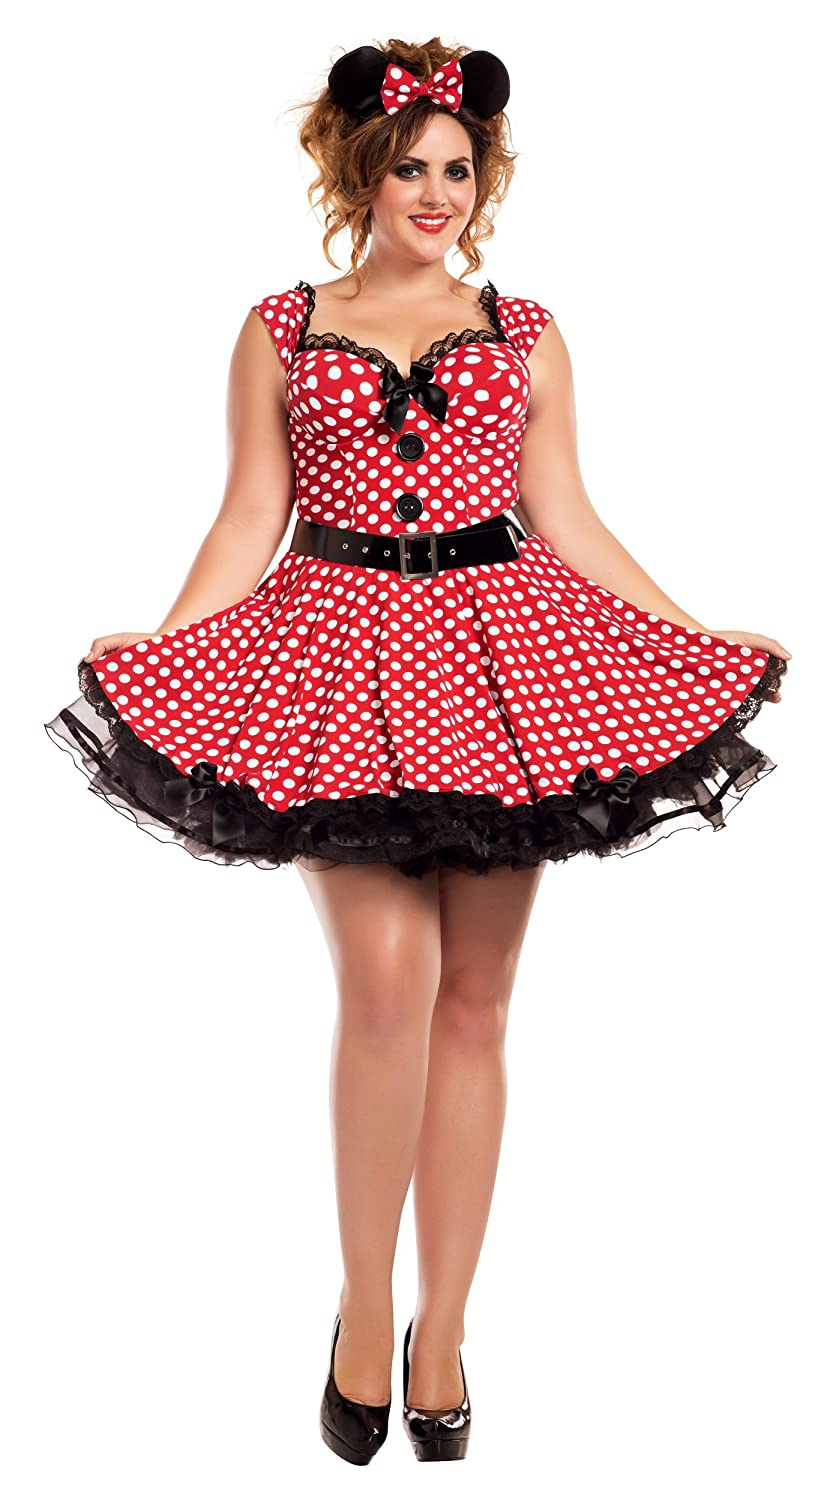 Missy Mouse Plus Size Adult Costume